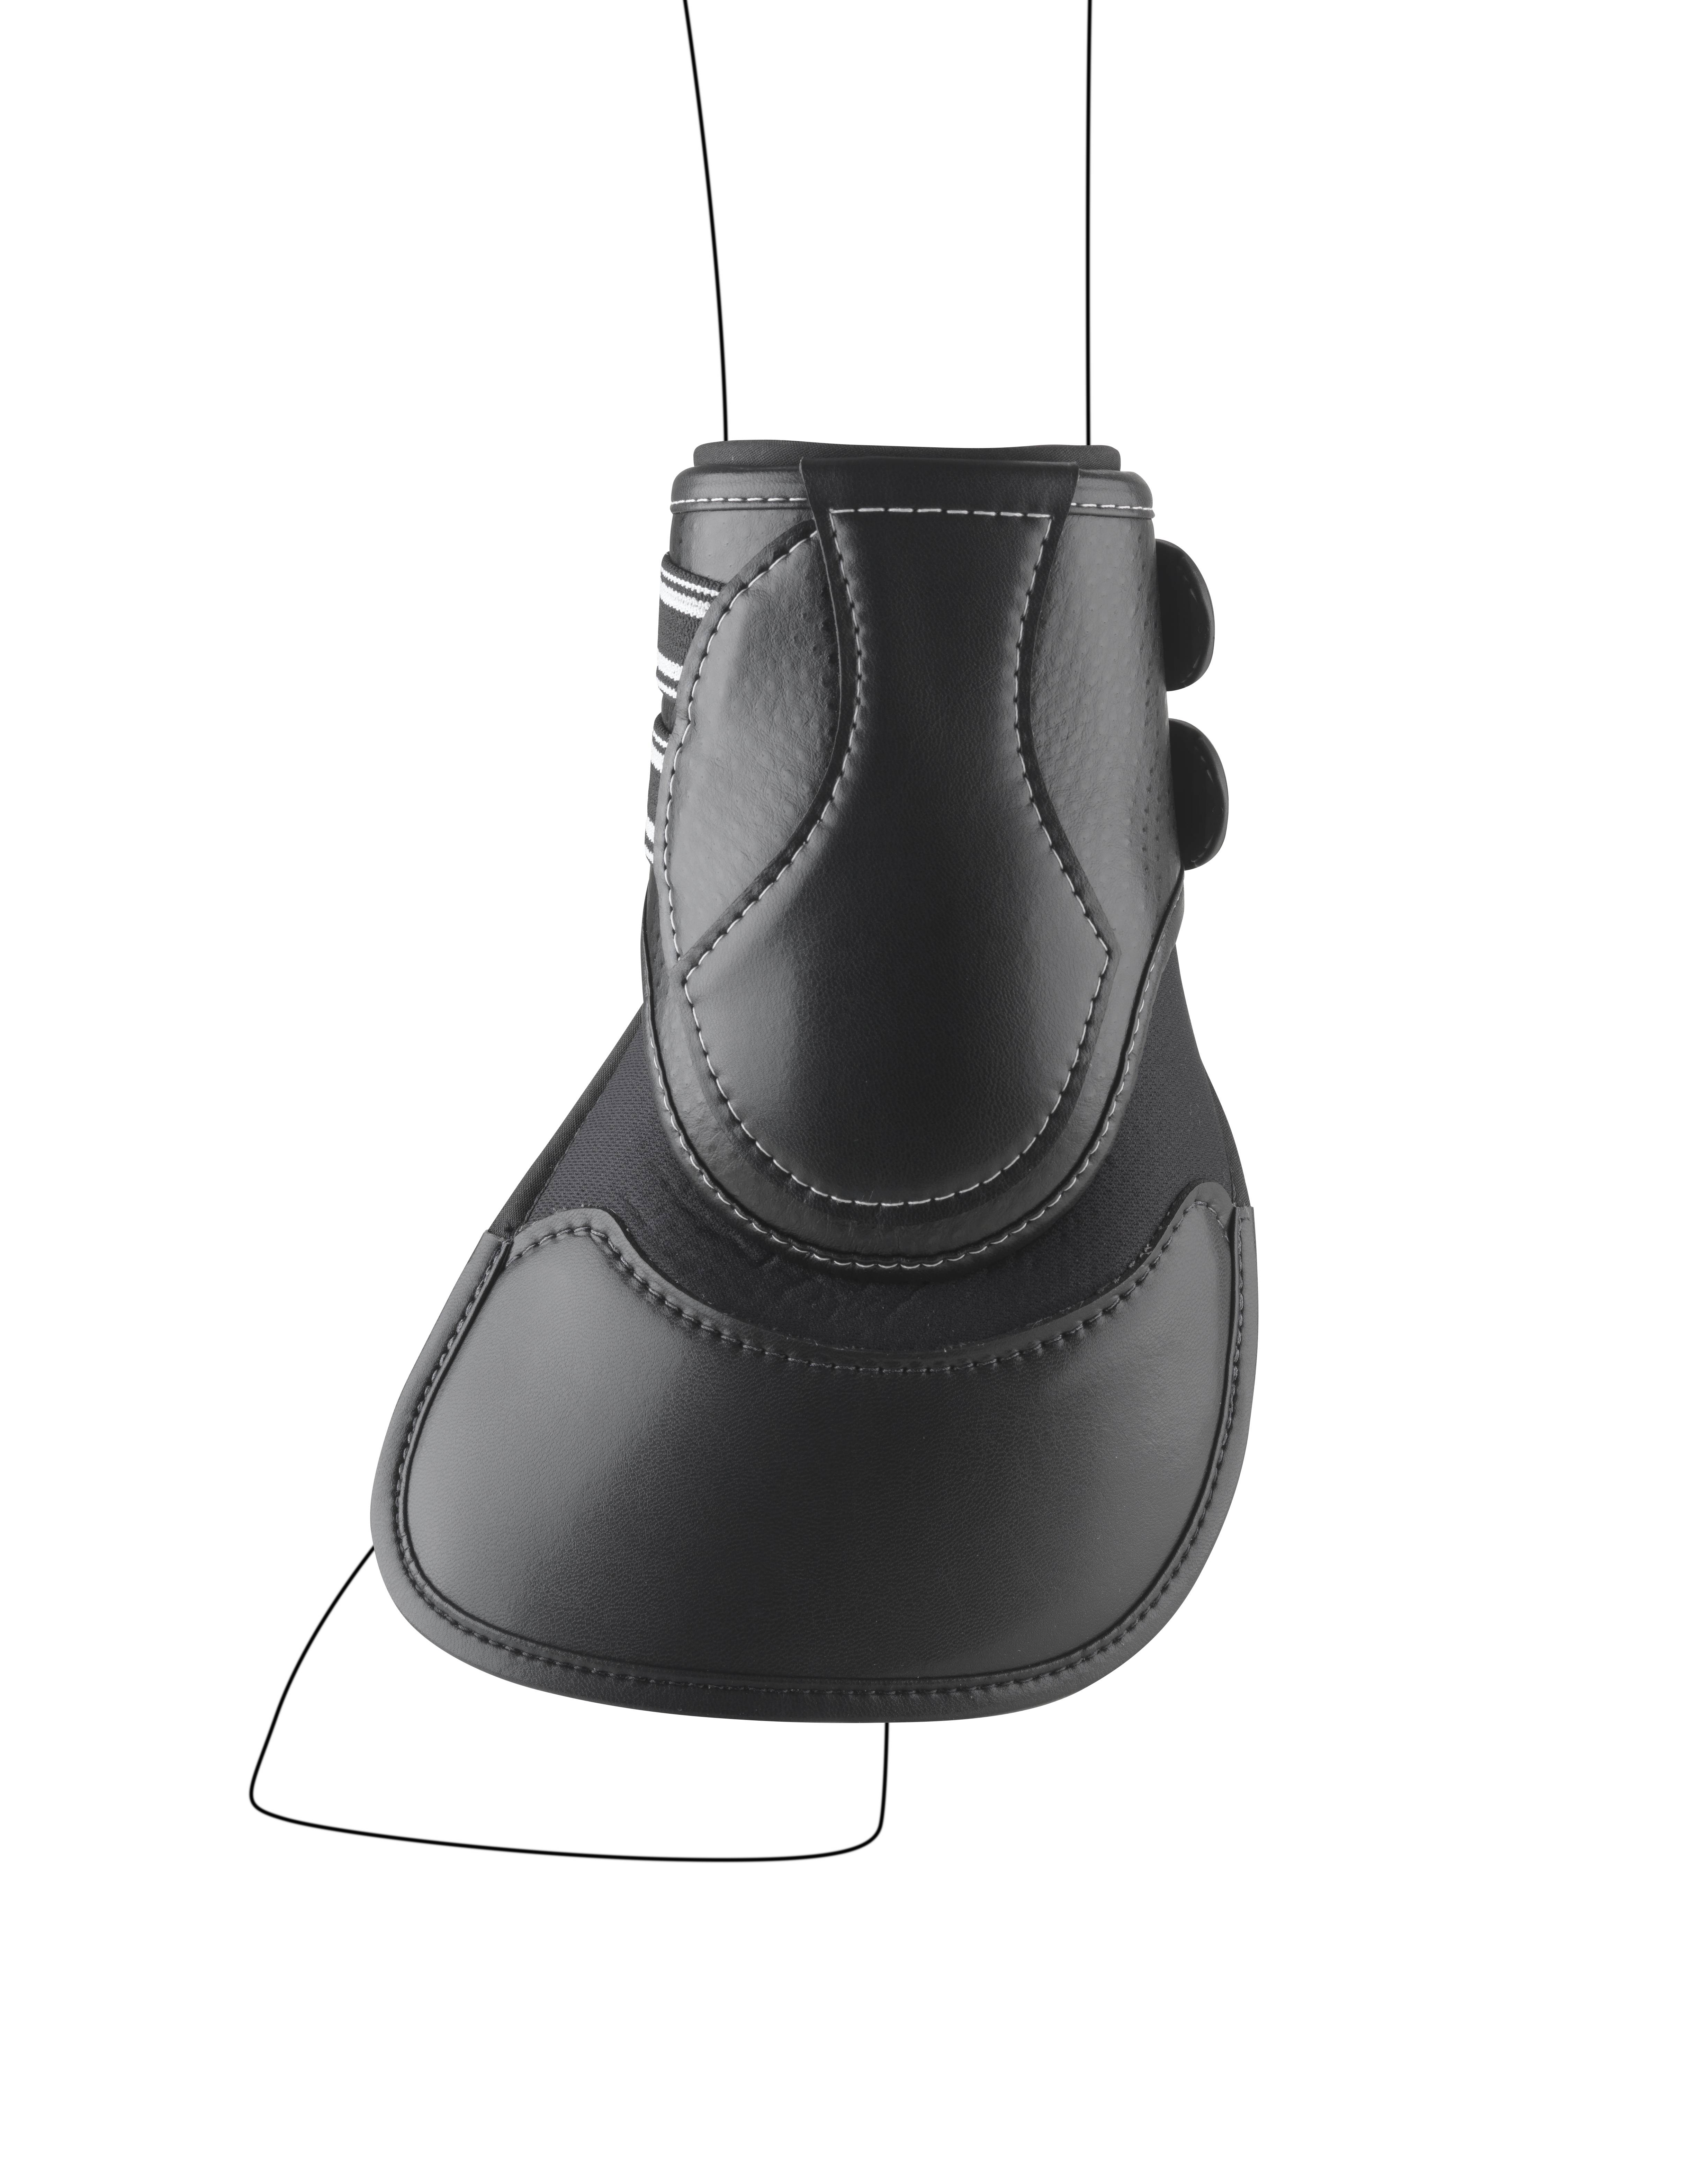 Equifit Extended Hind D-Teq Boots - Full Coverage